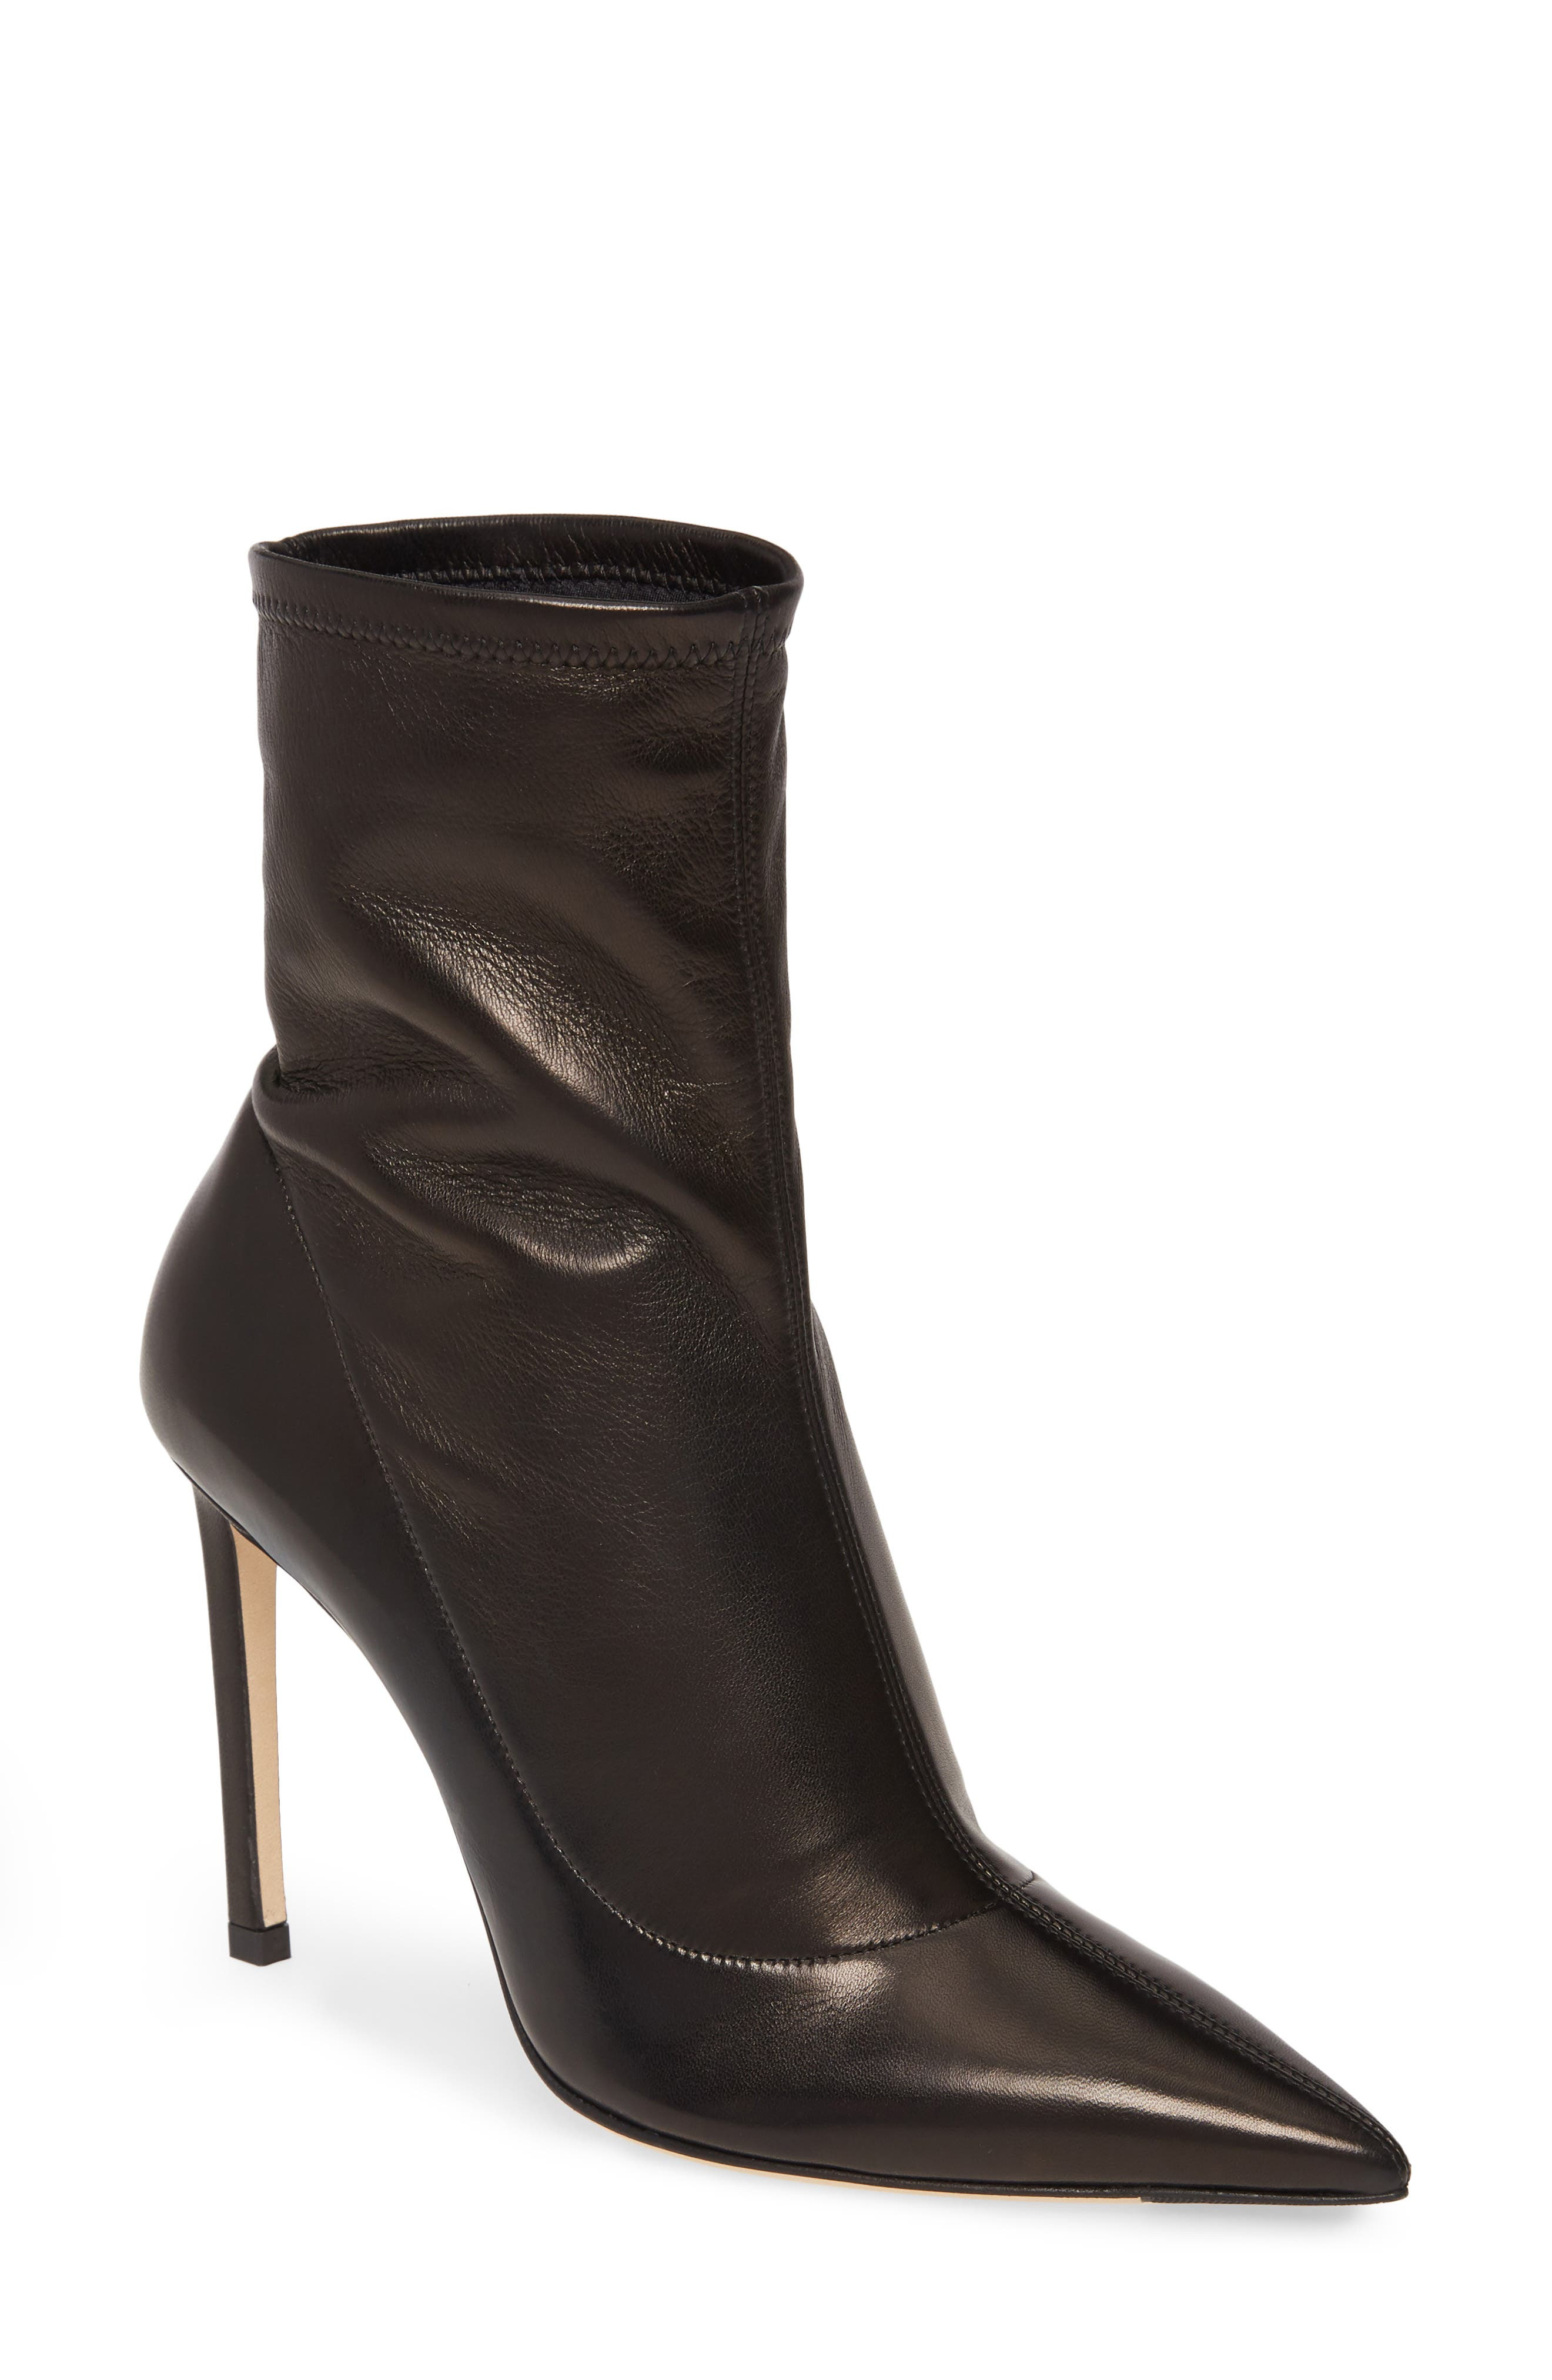 Jimmy Choo Brin Slouch Pointed Toe Stiletto Bootie - Black